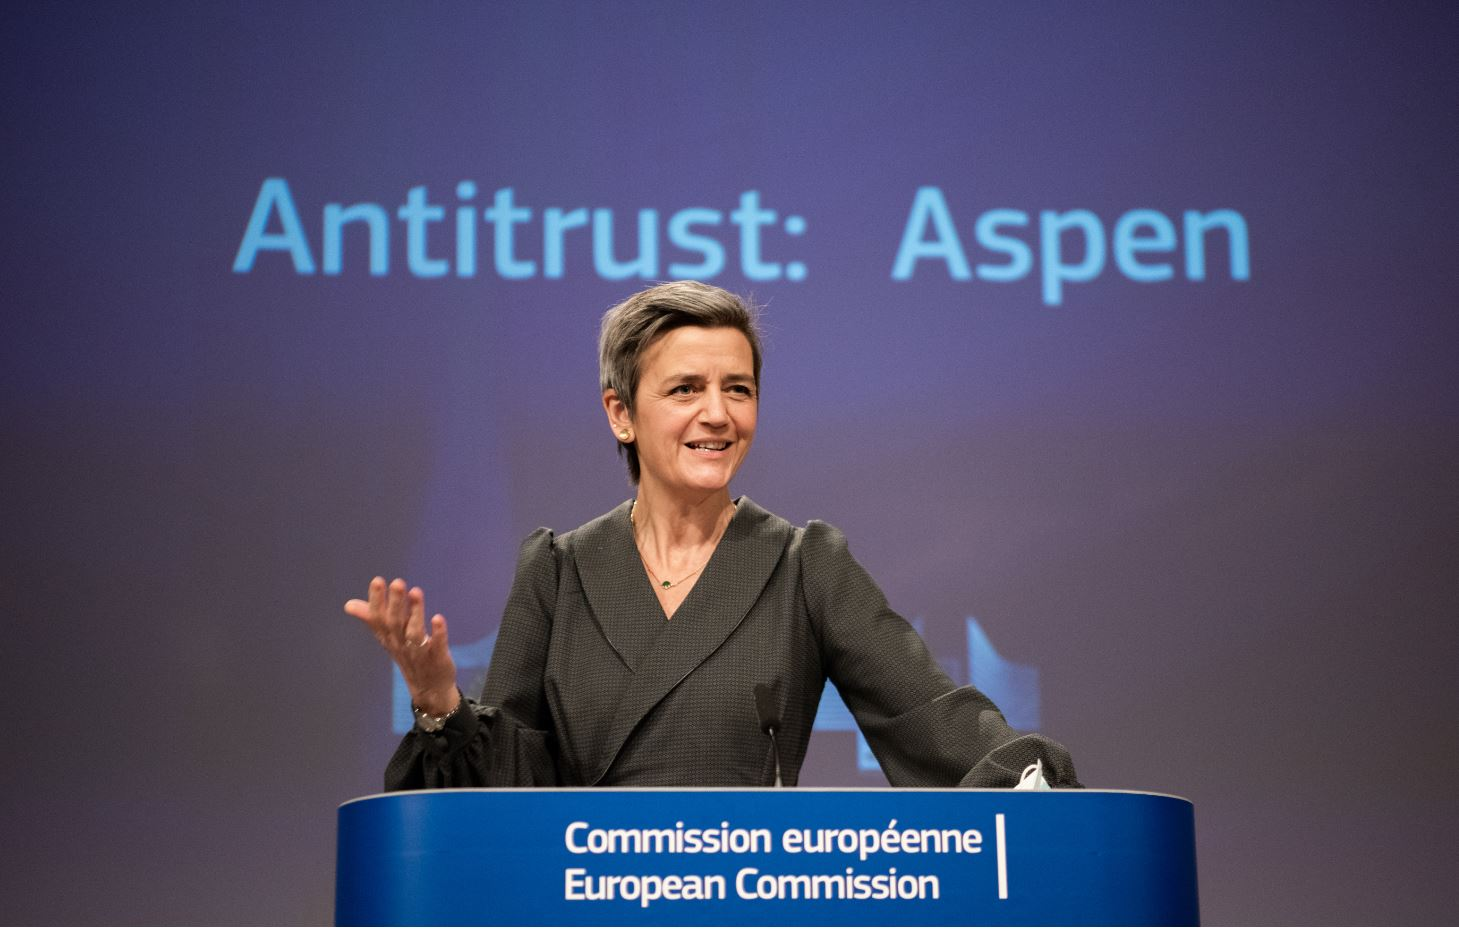 Margrethe Vestager dares take the fight to the giants